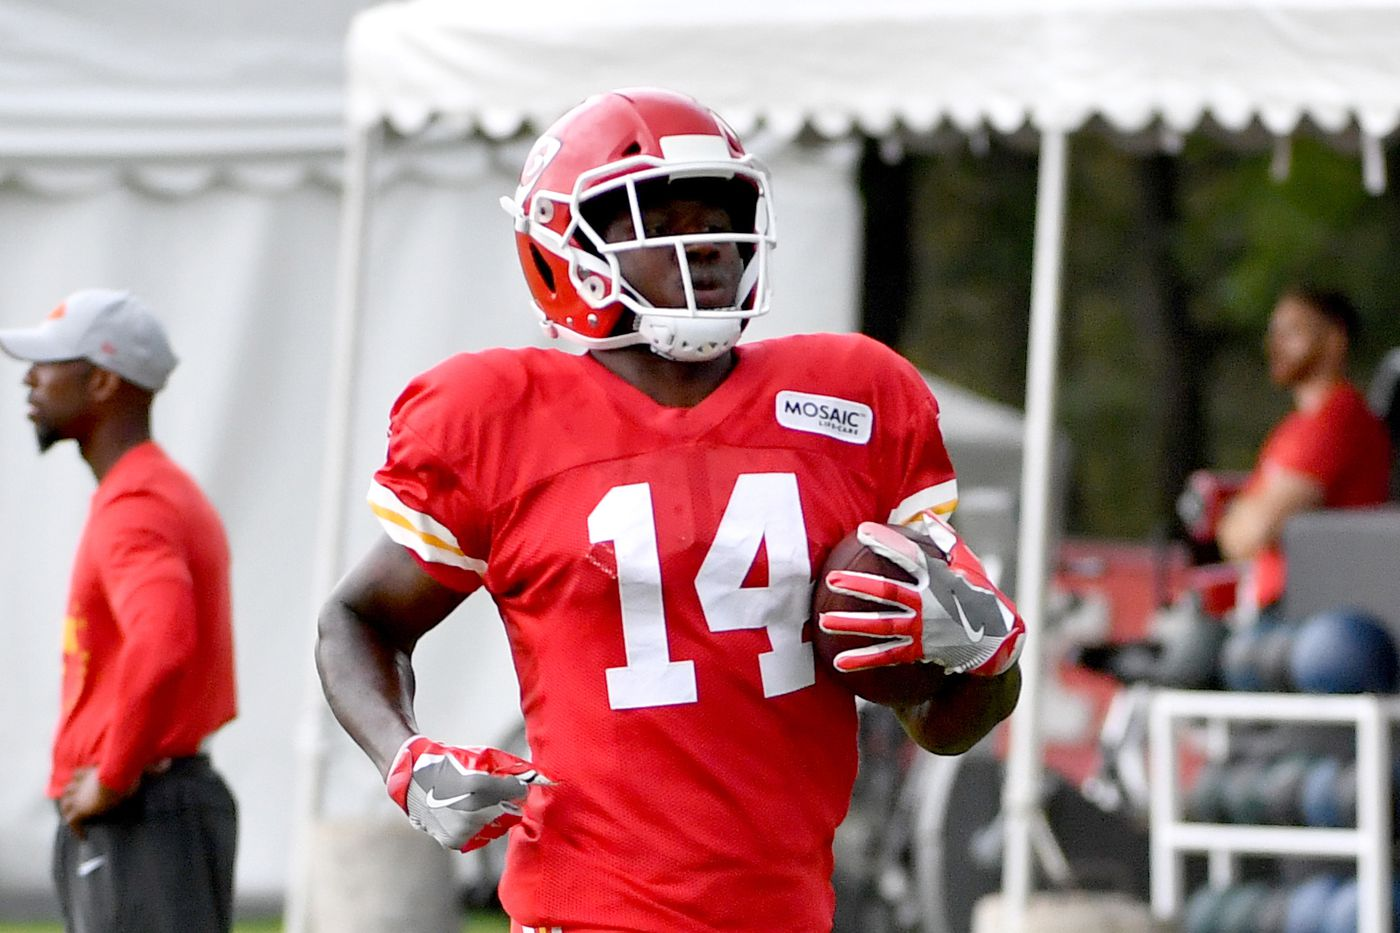 finest selection f2641 b50df What the Chiefs are saying about Sammy Watkins - Arrowhead Pride